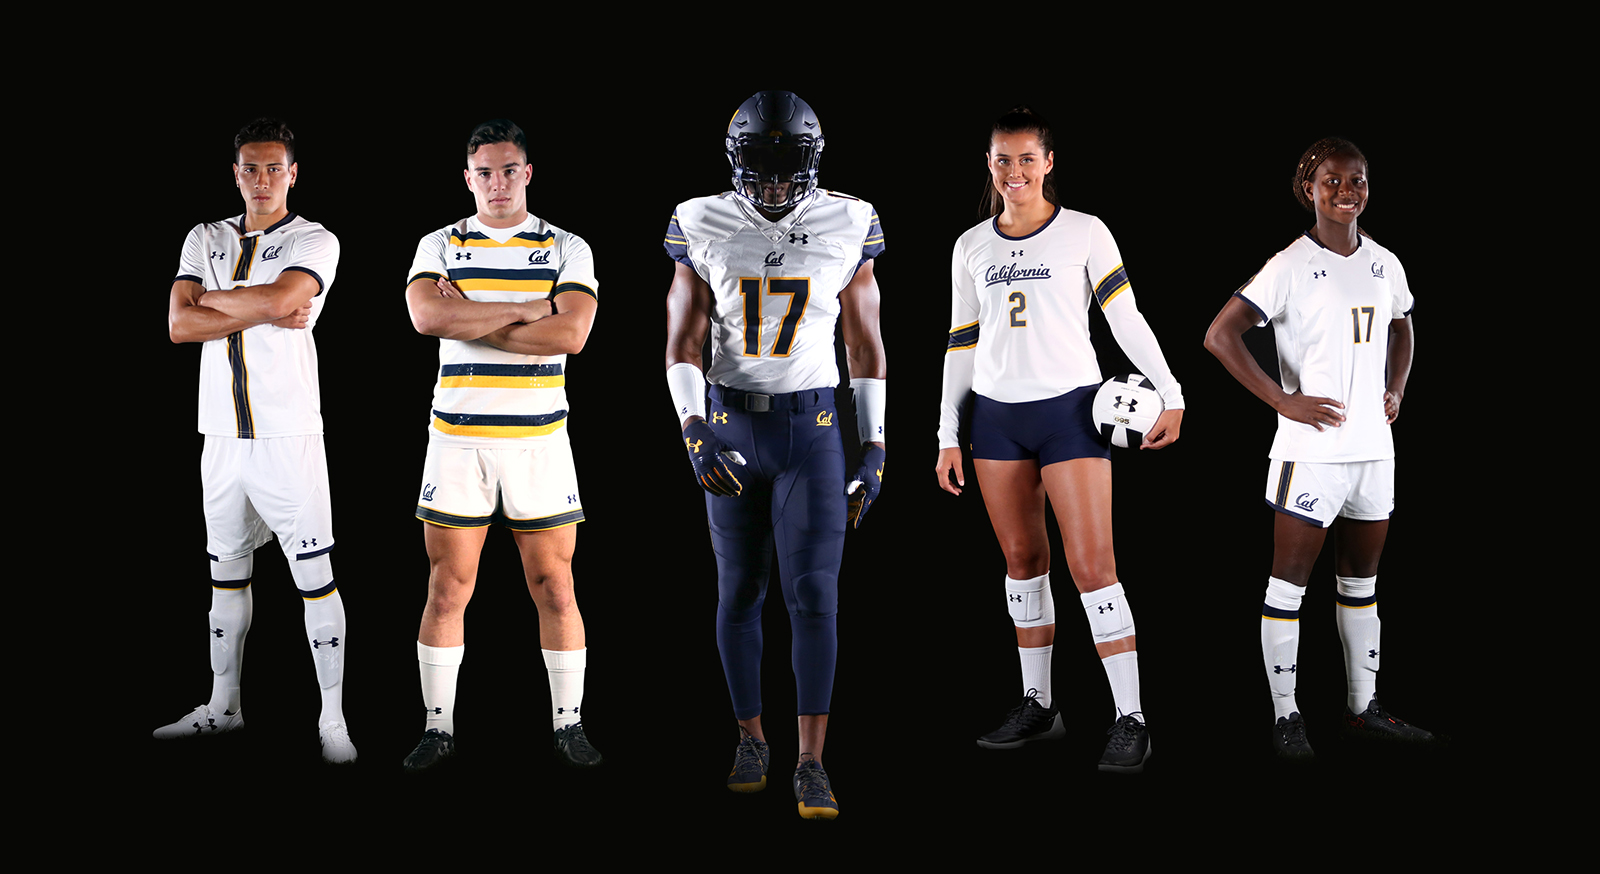 Pictured is a few of the other sports that I photographed as a part of the Cal/Under Armour uniform reveal.